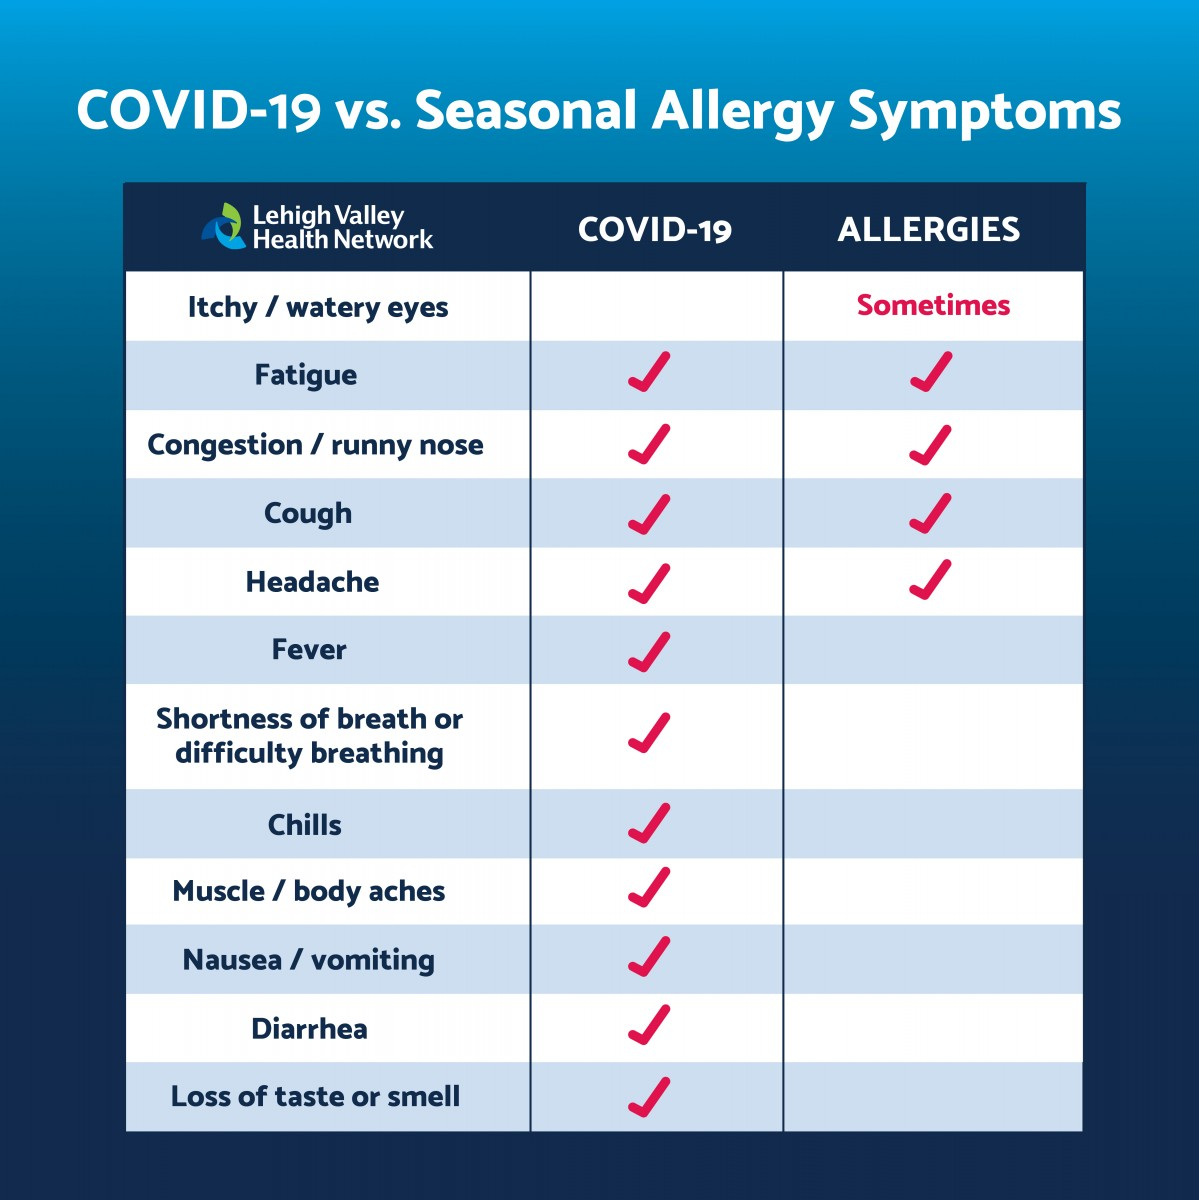 Covid & seasonal allergies